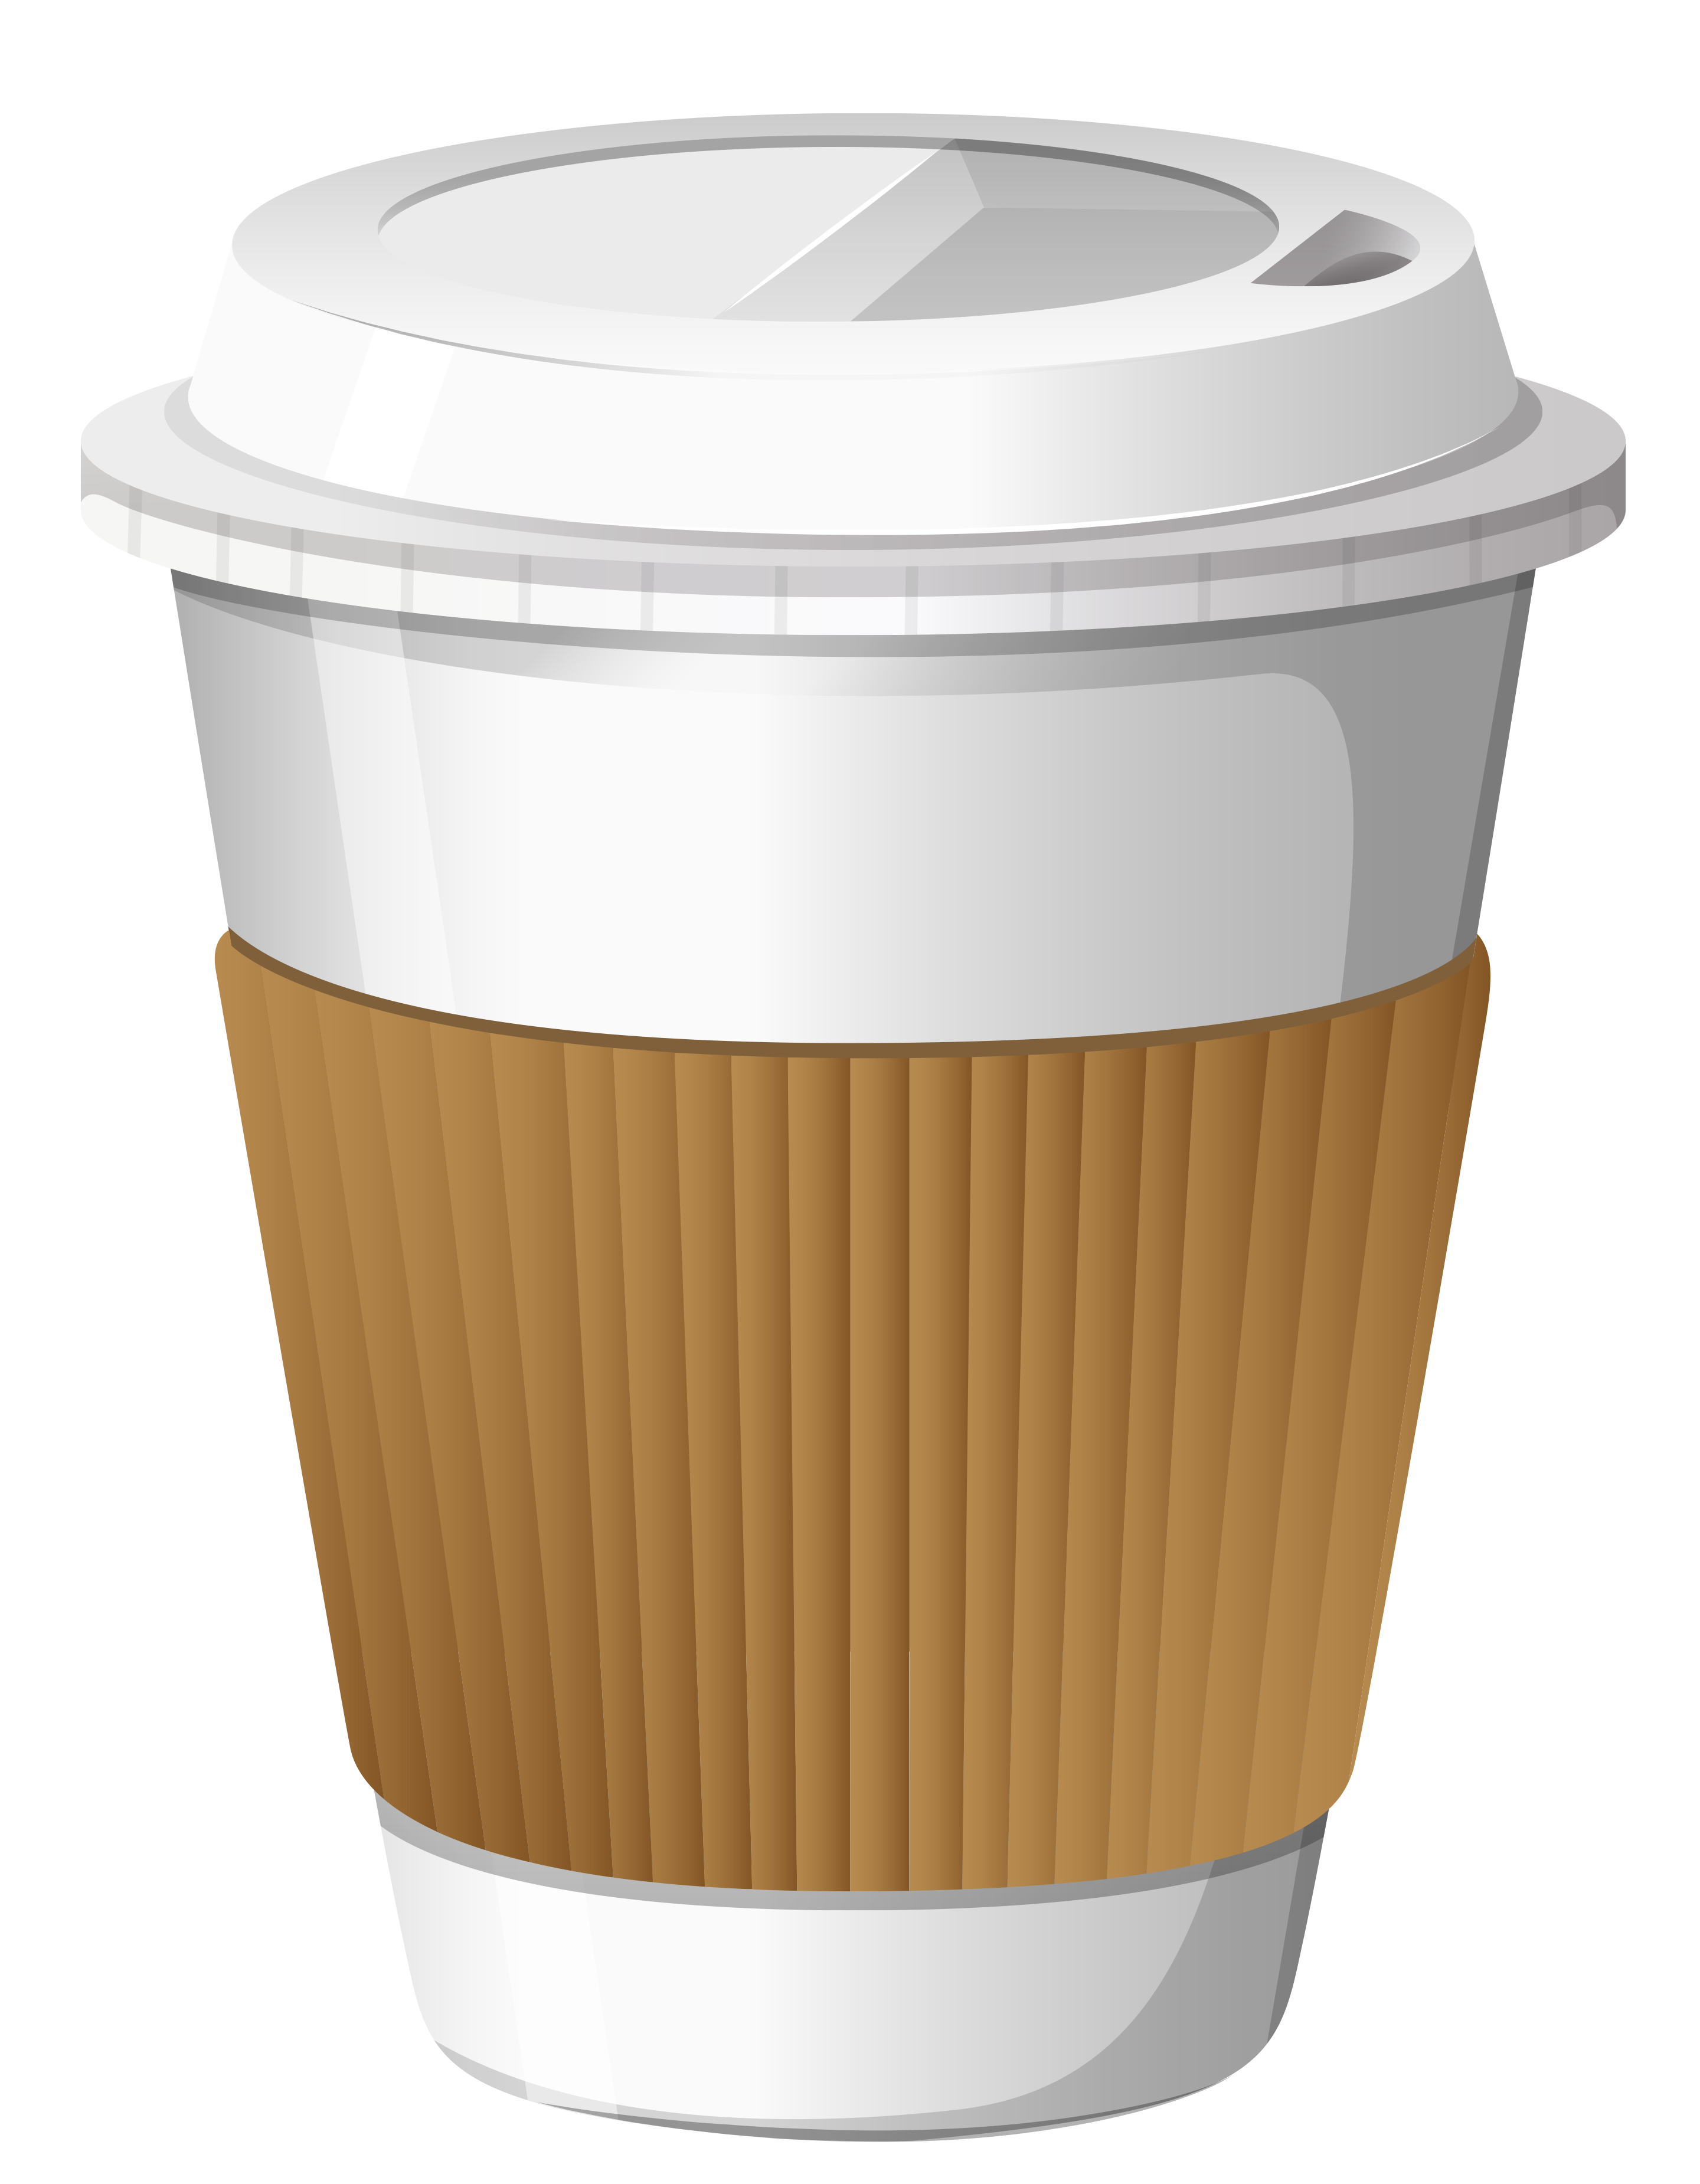 Coffee cup clipart transparent background.